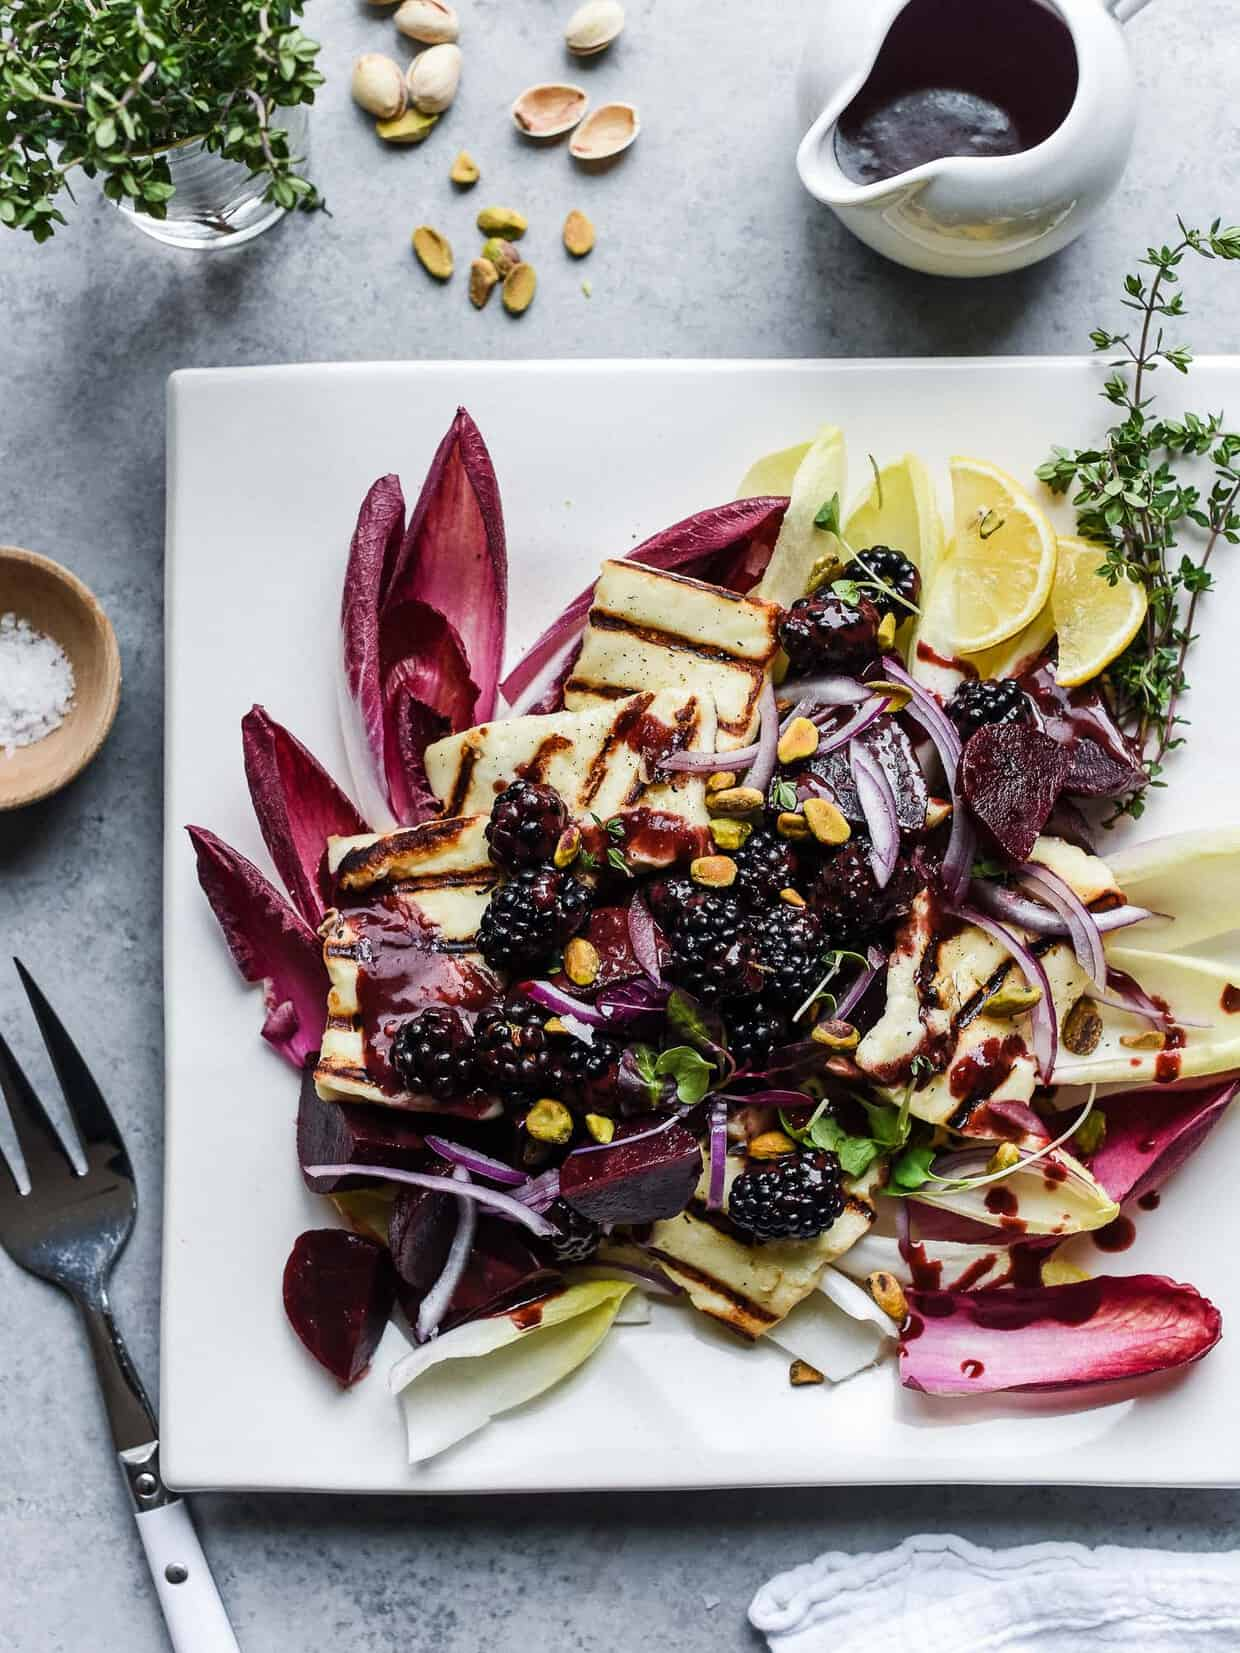 Halloumi Salad with Beets and Blackberries